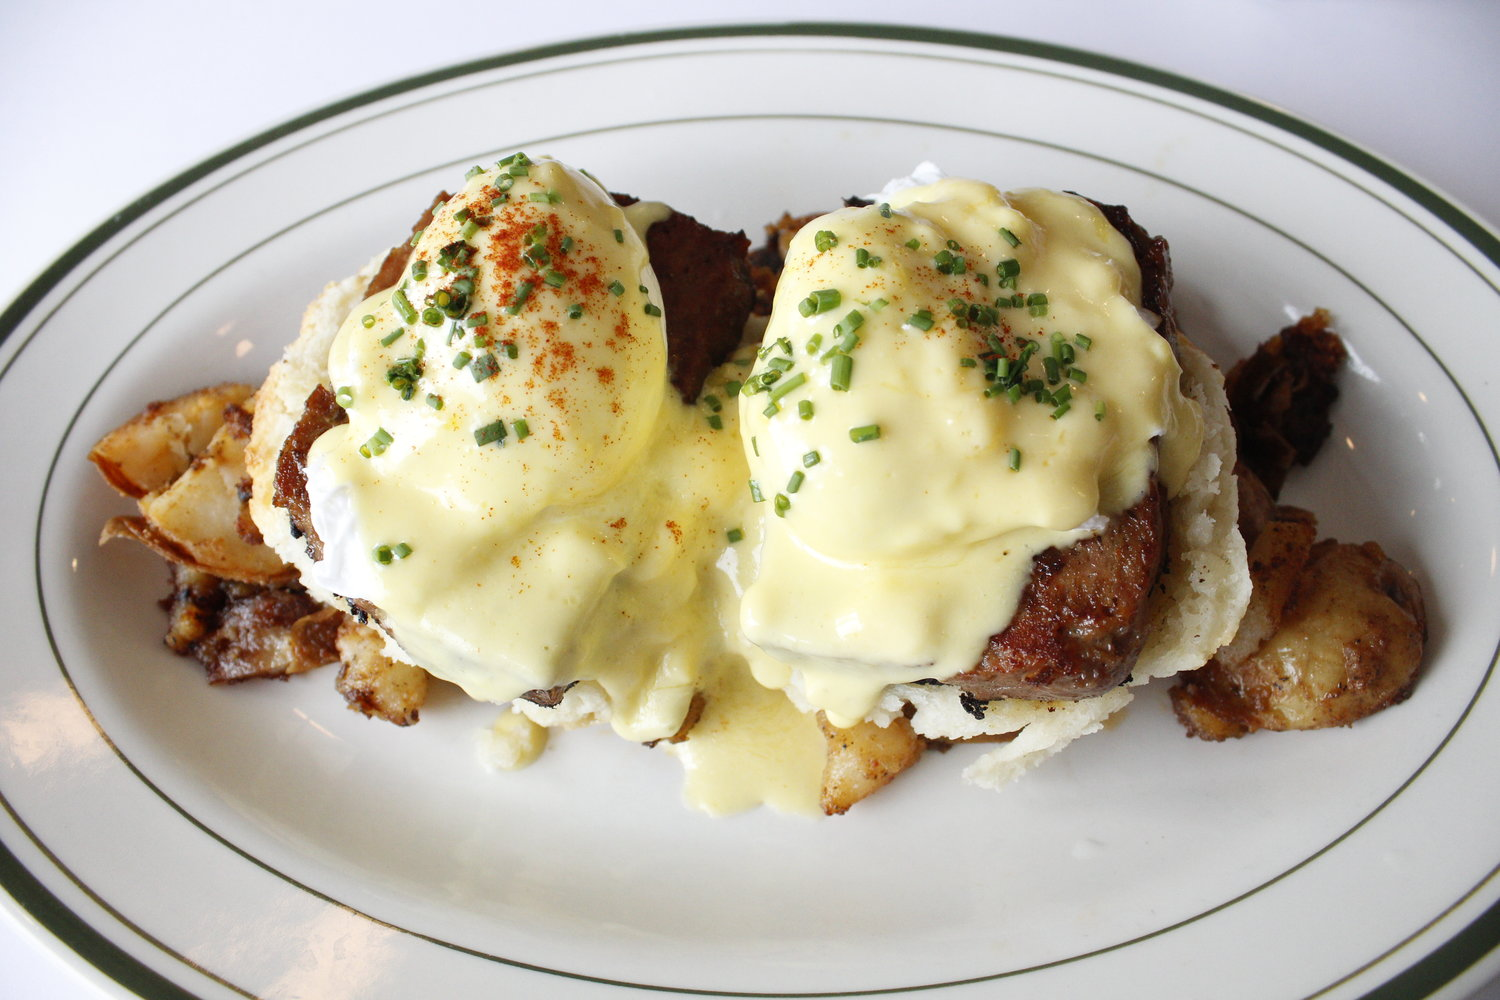 For a hefty meal, go for the eggs benedict, this version served with maple sausage and a biscuit.